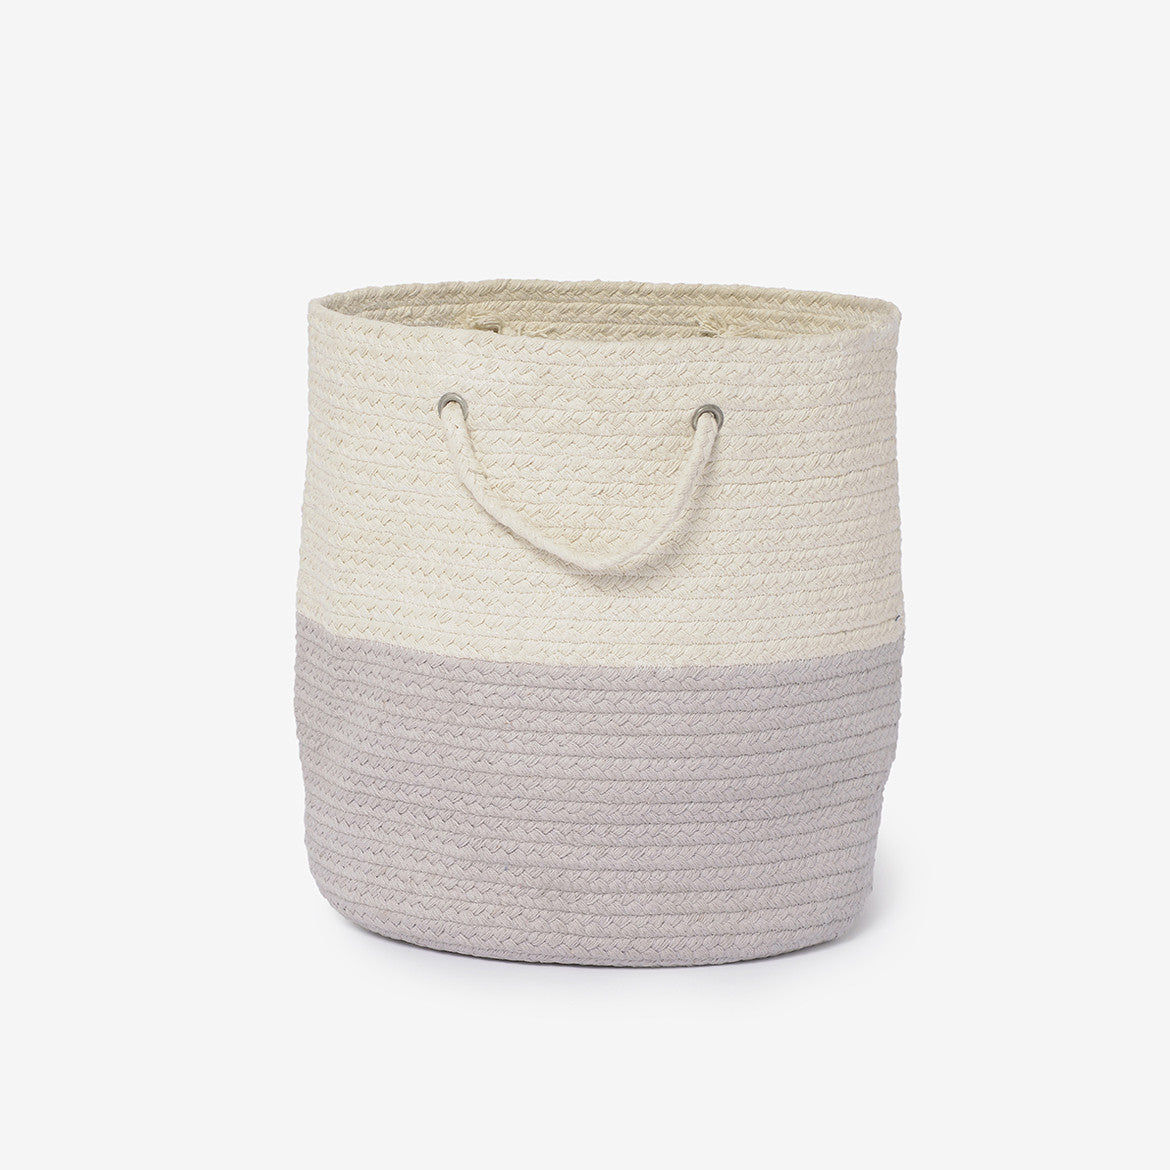 Dipped Braided Woven Storage Basket Light Grey